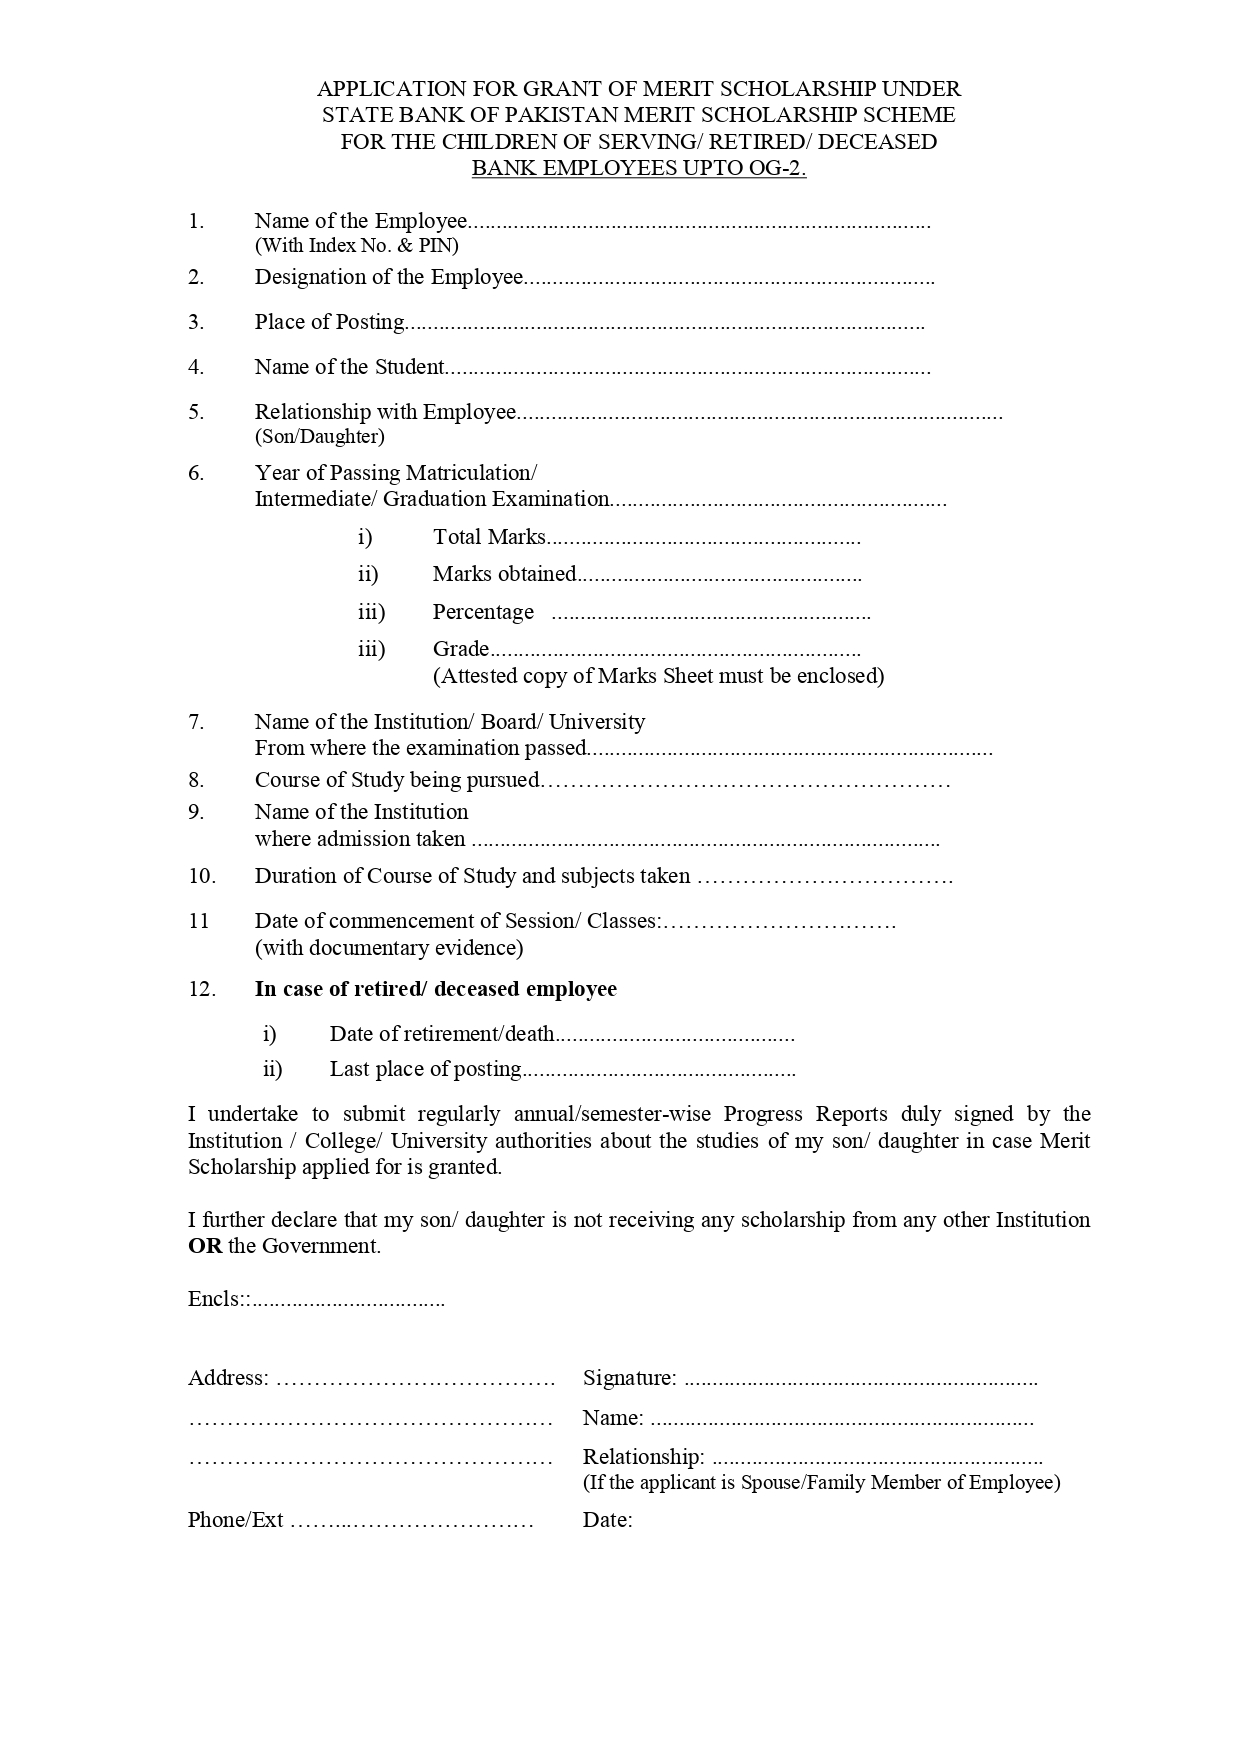 State Bank Of Pakistan Scholarship 2021 Application Form